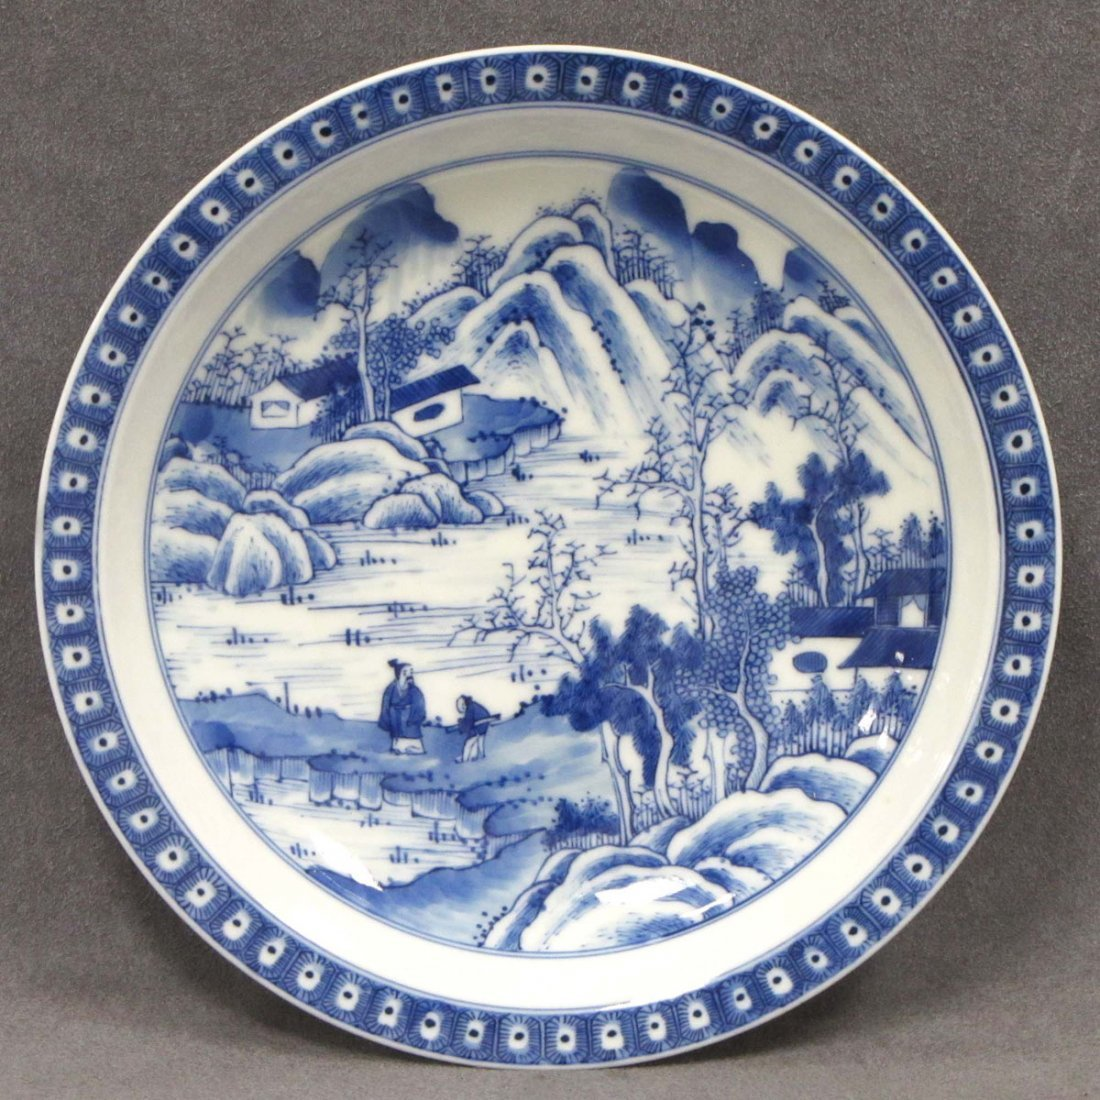 CHINESE DECORATED PORCELAIN PLATE WITH LANDSCAPE